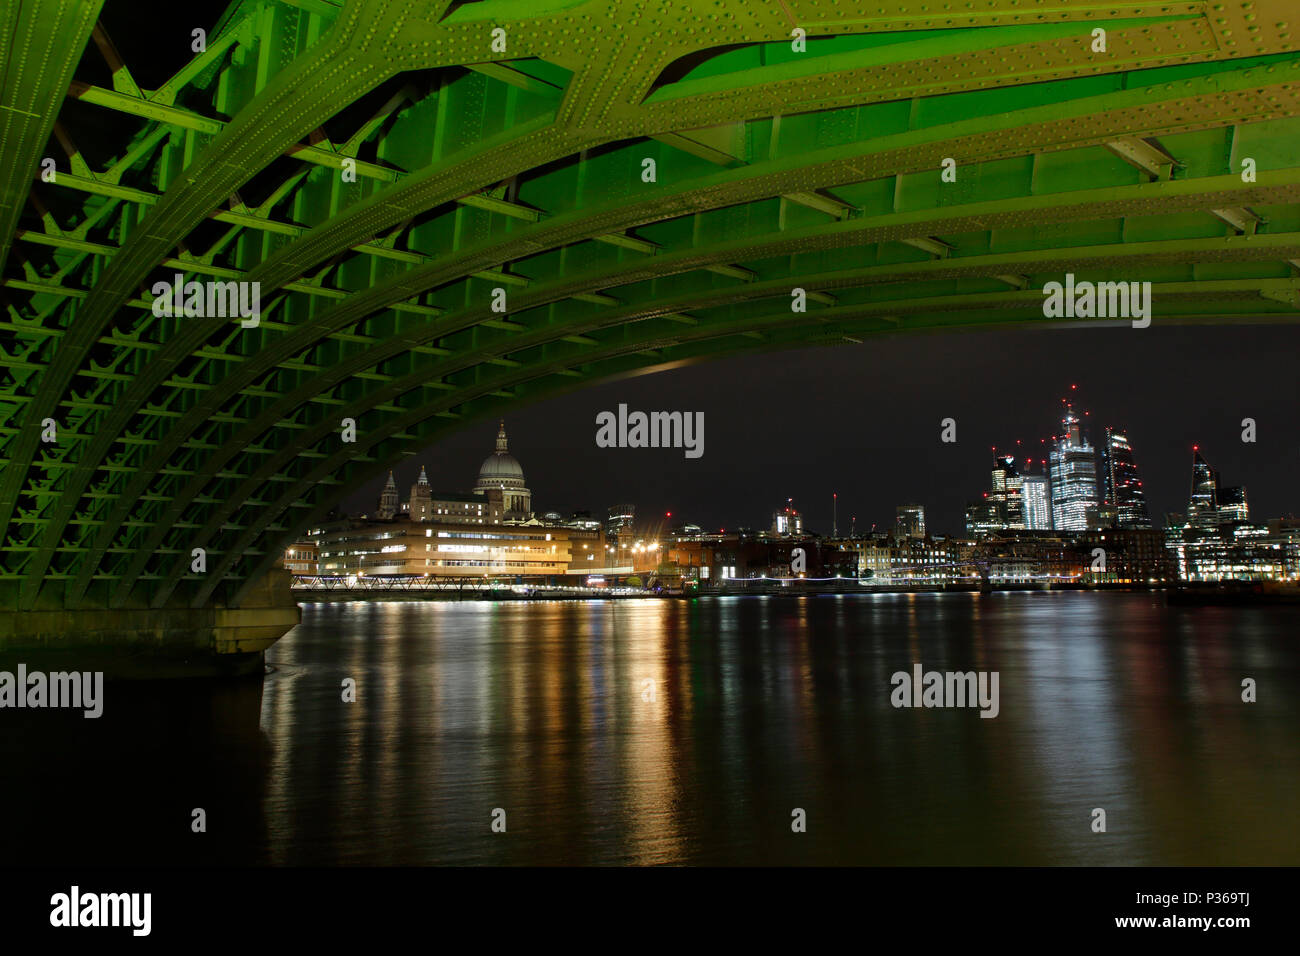 The city of London including Saint Pauls Cathedral from under Blackfriars Bridge, light-painted green with a powerful lamp - Stock Image